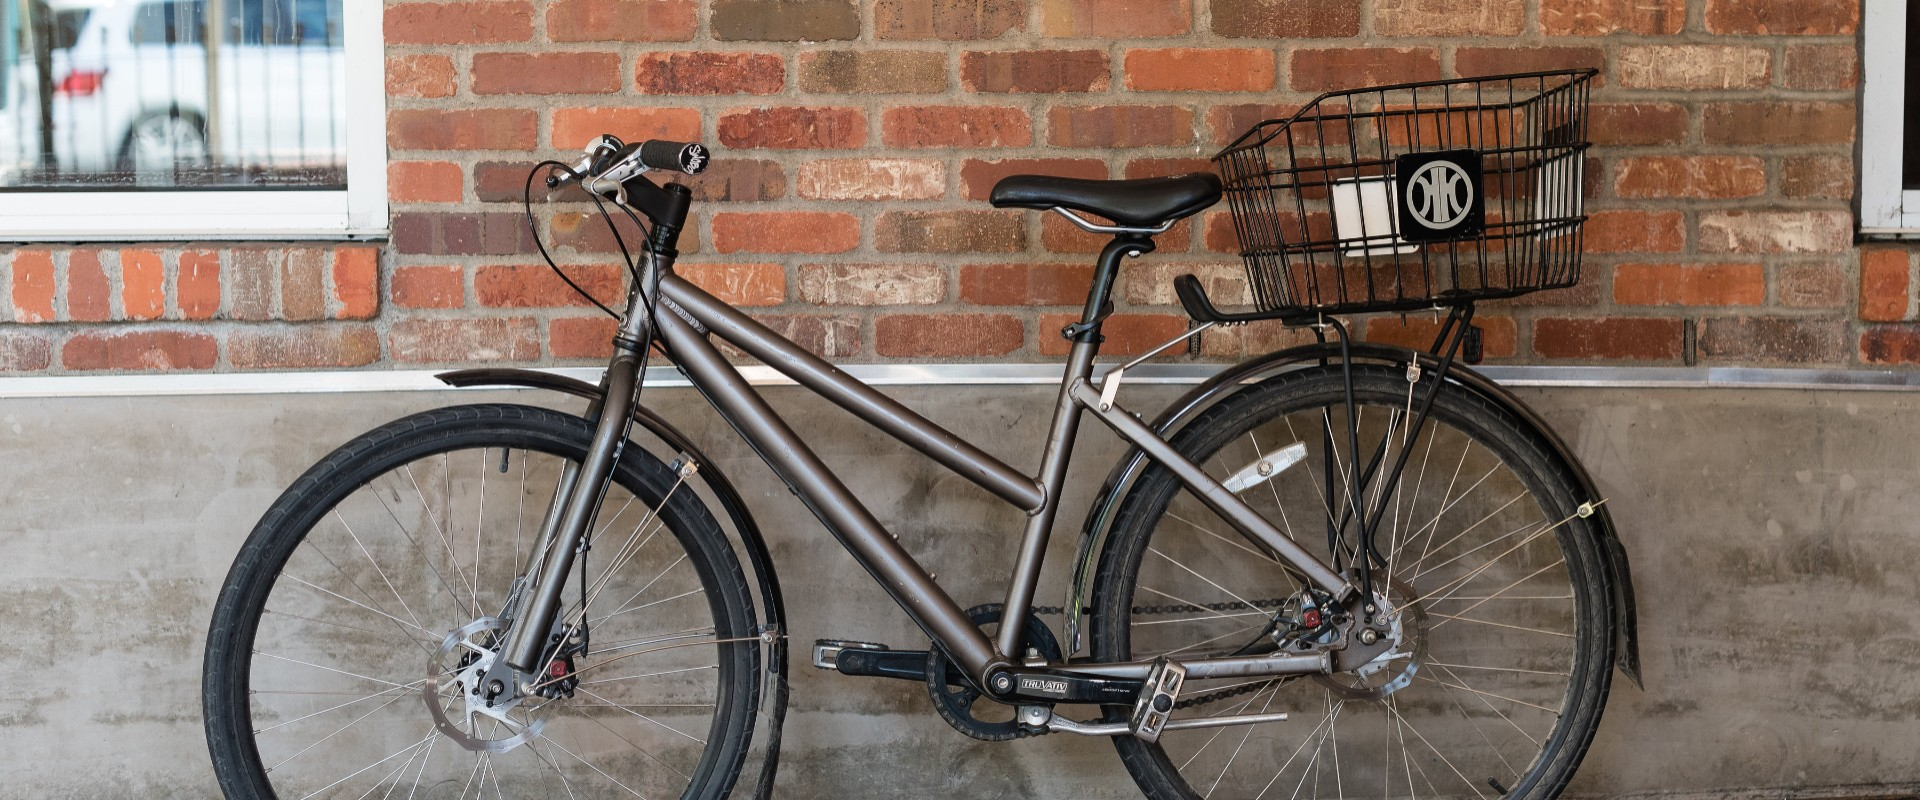 Heathman Bicycle